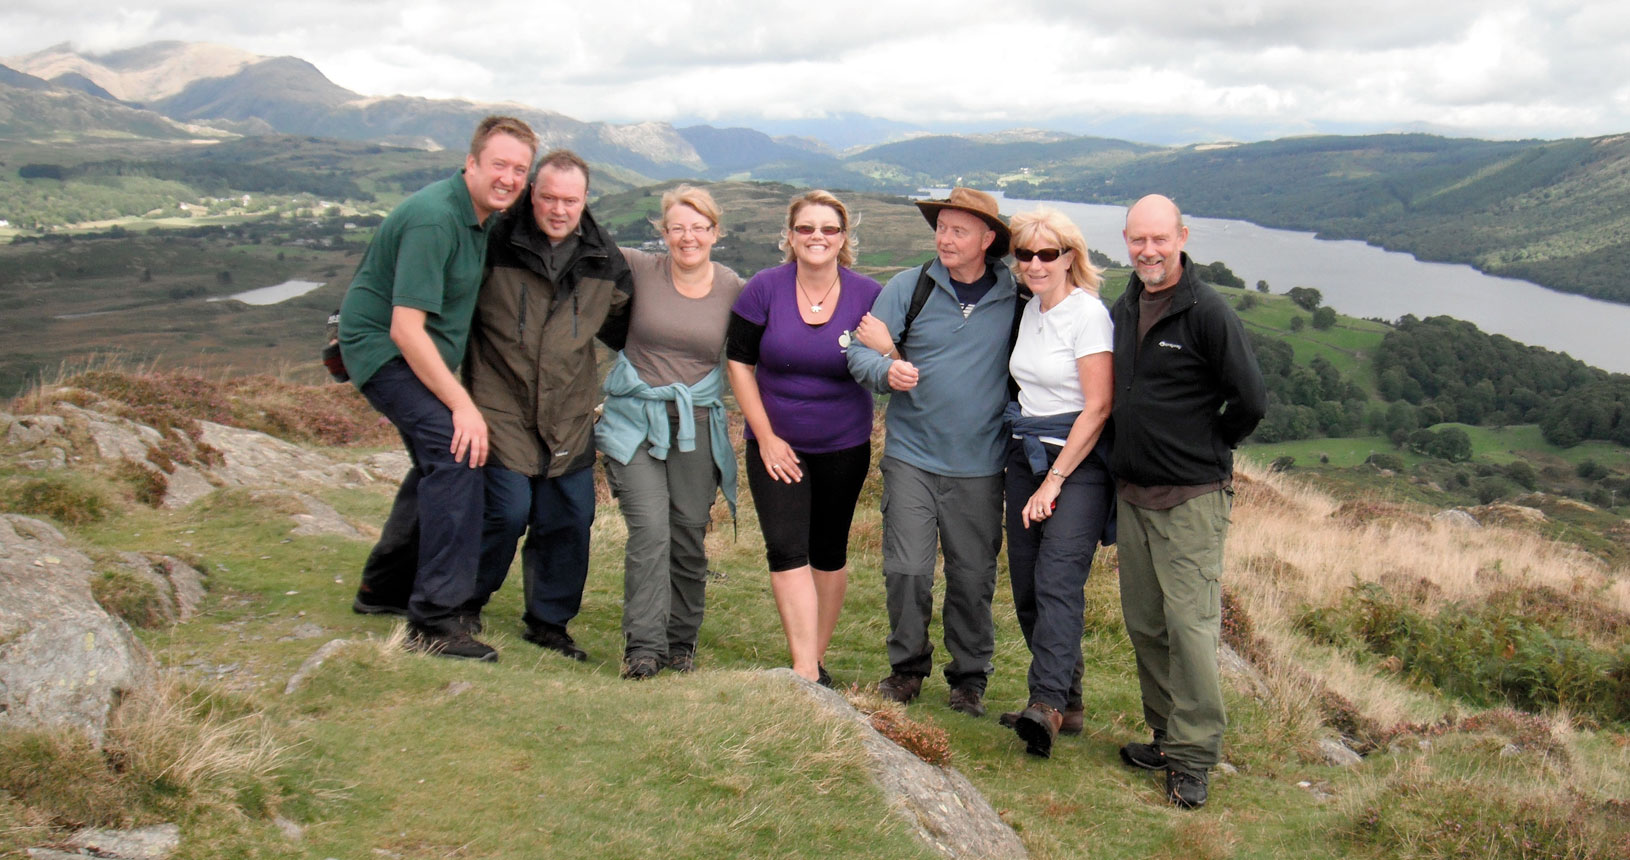 Lake District group photo on hillside